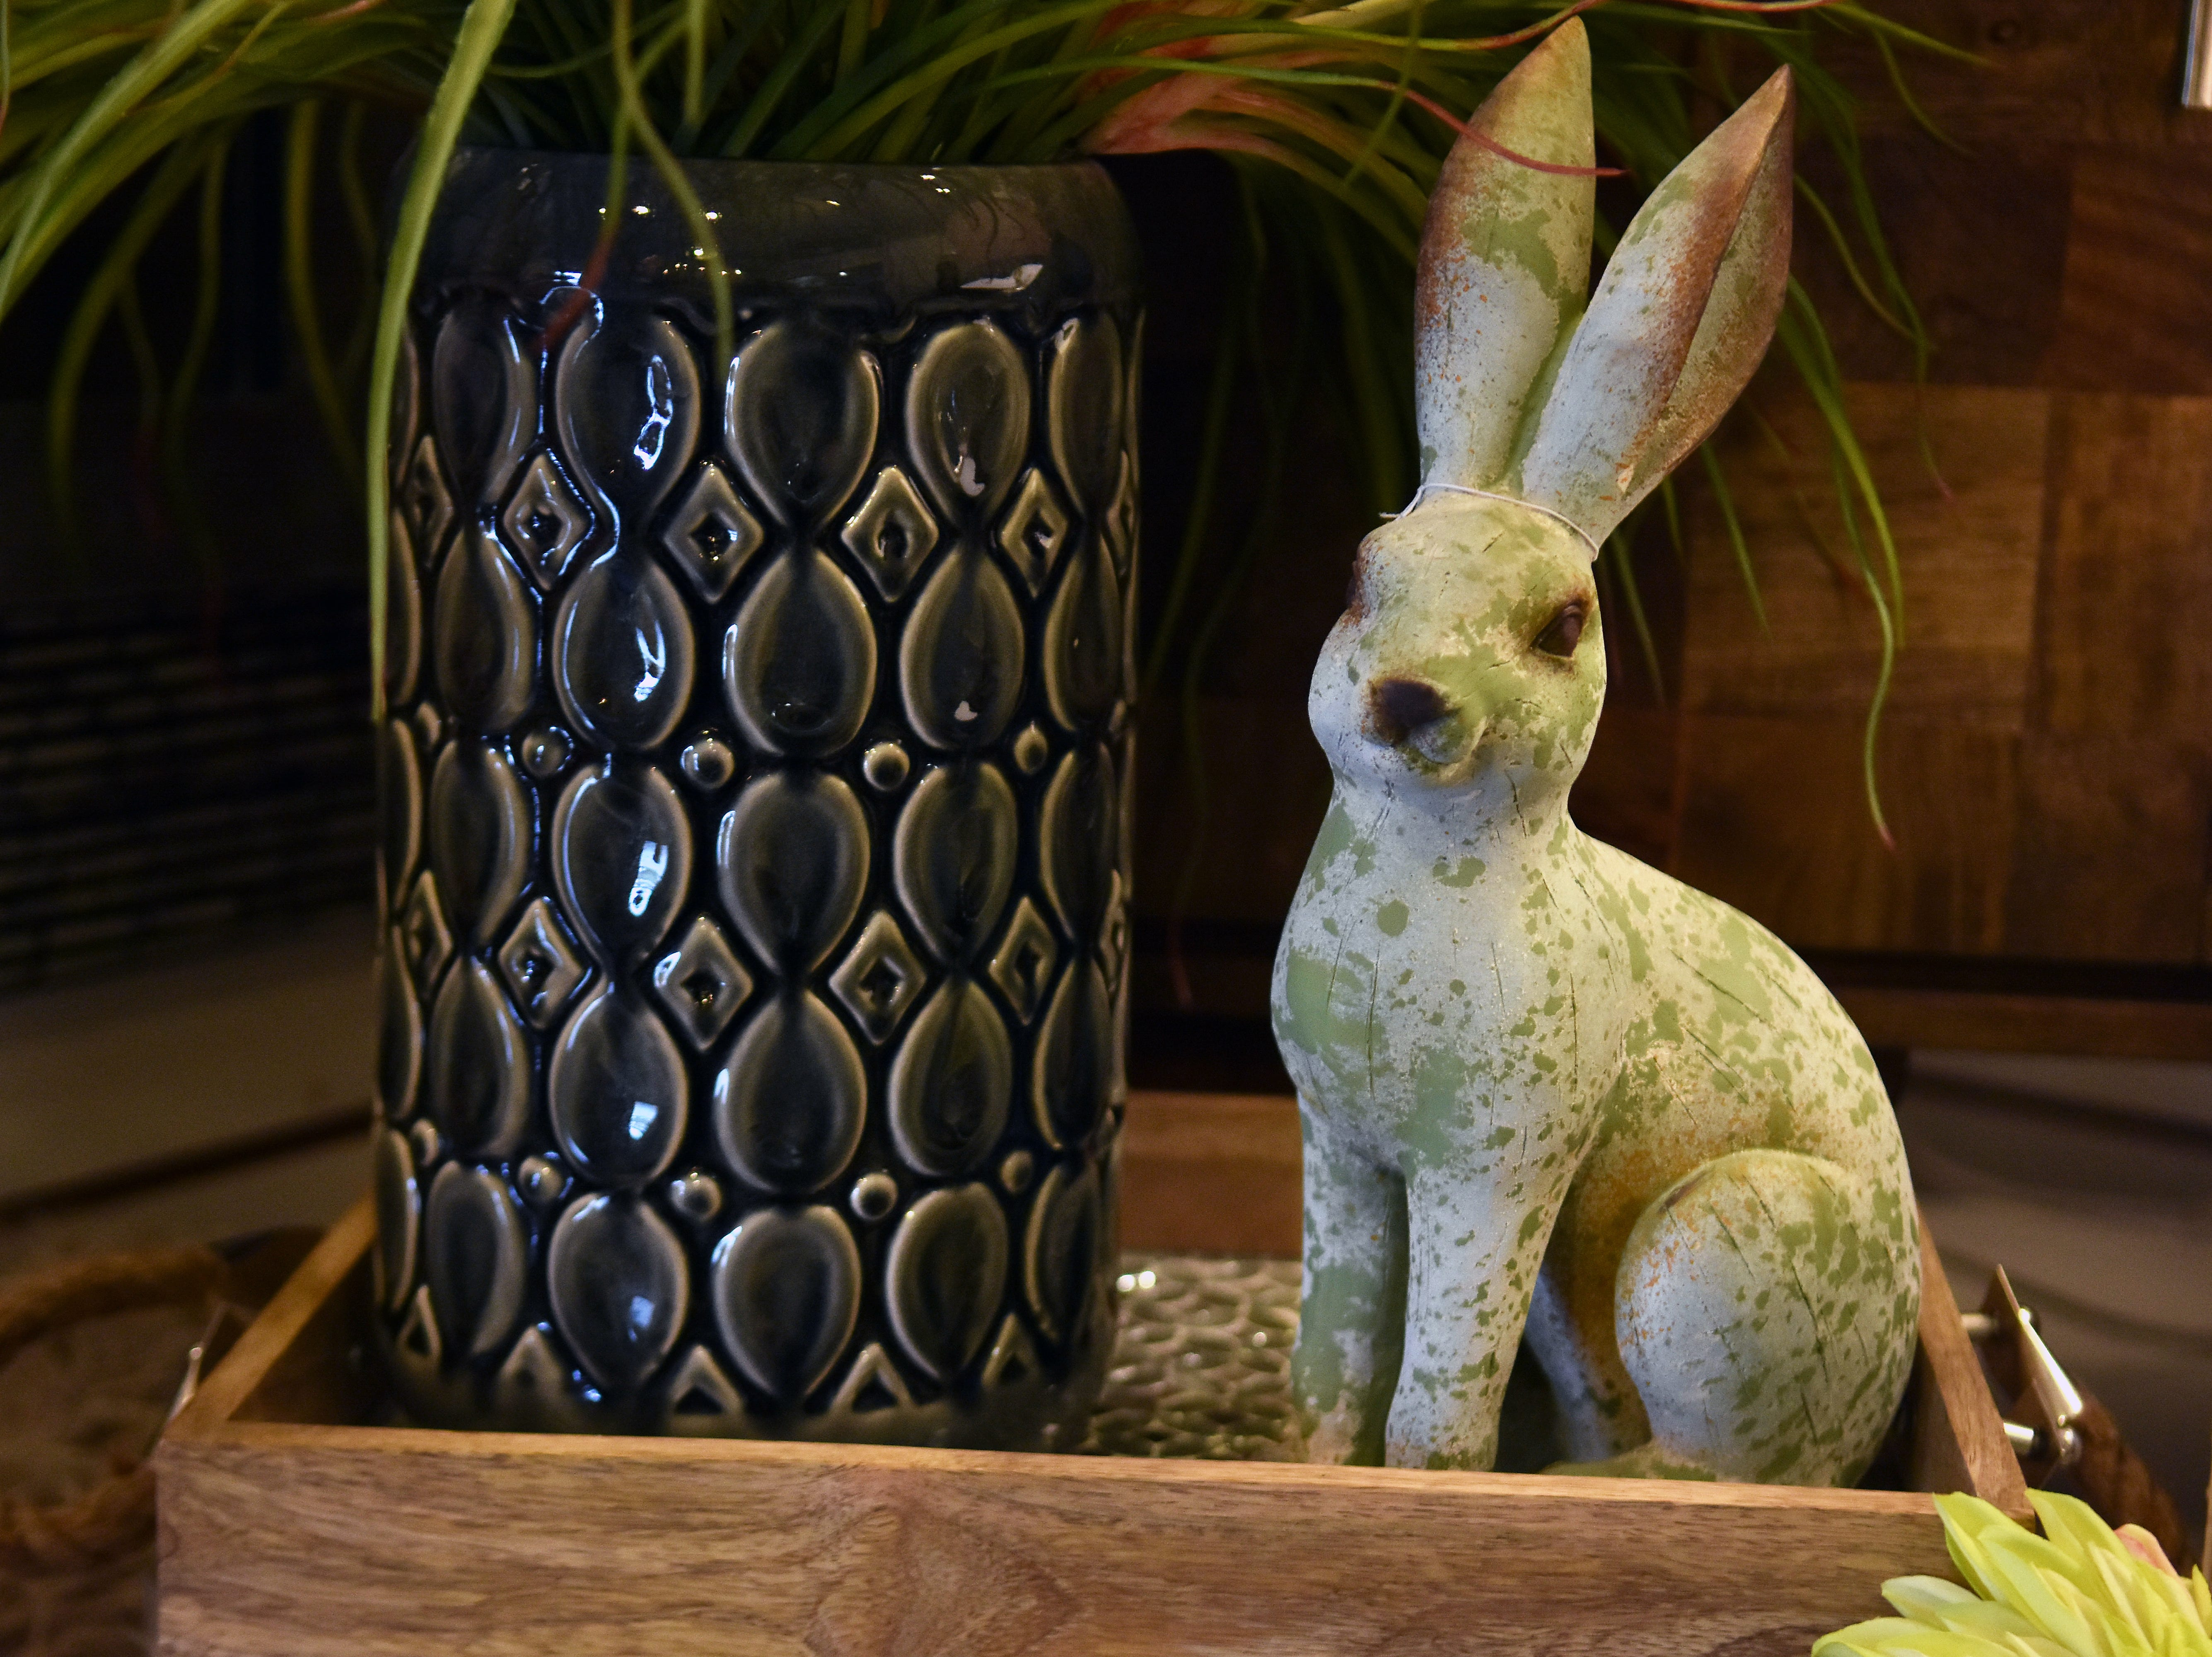 Real Deals carries many different bunny rabbit decor pieces that will add a warm touch to any home.